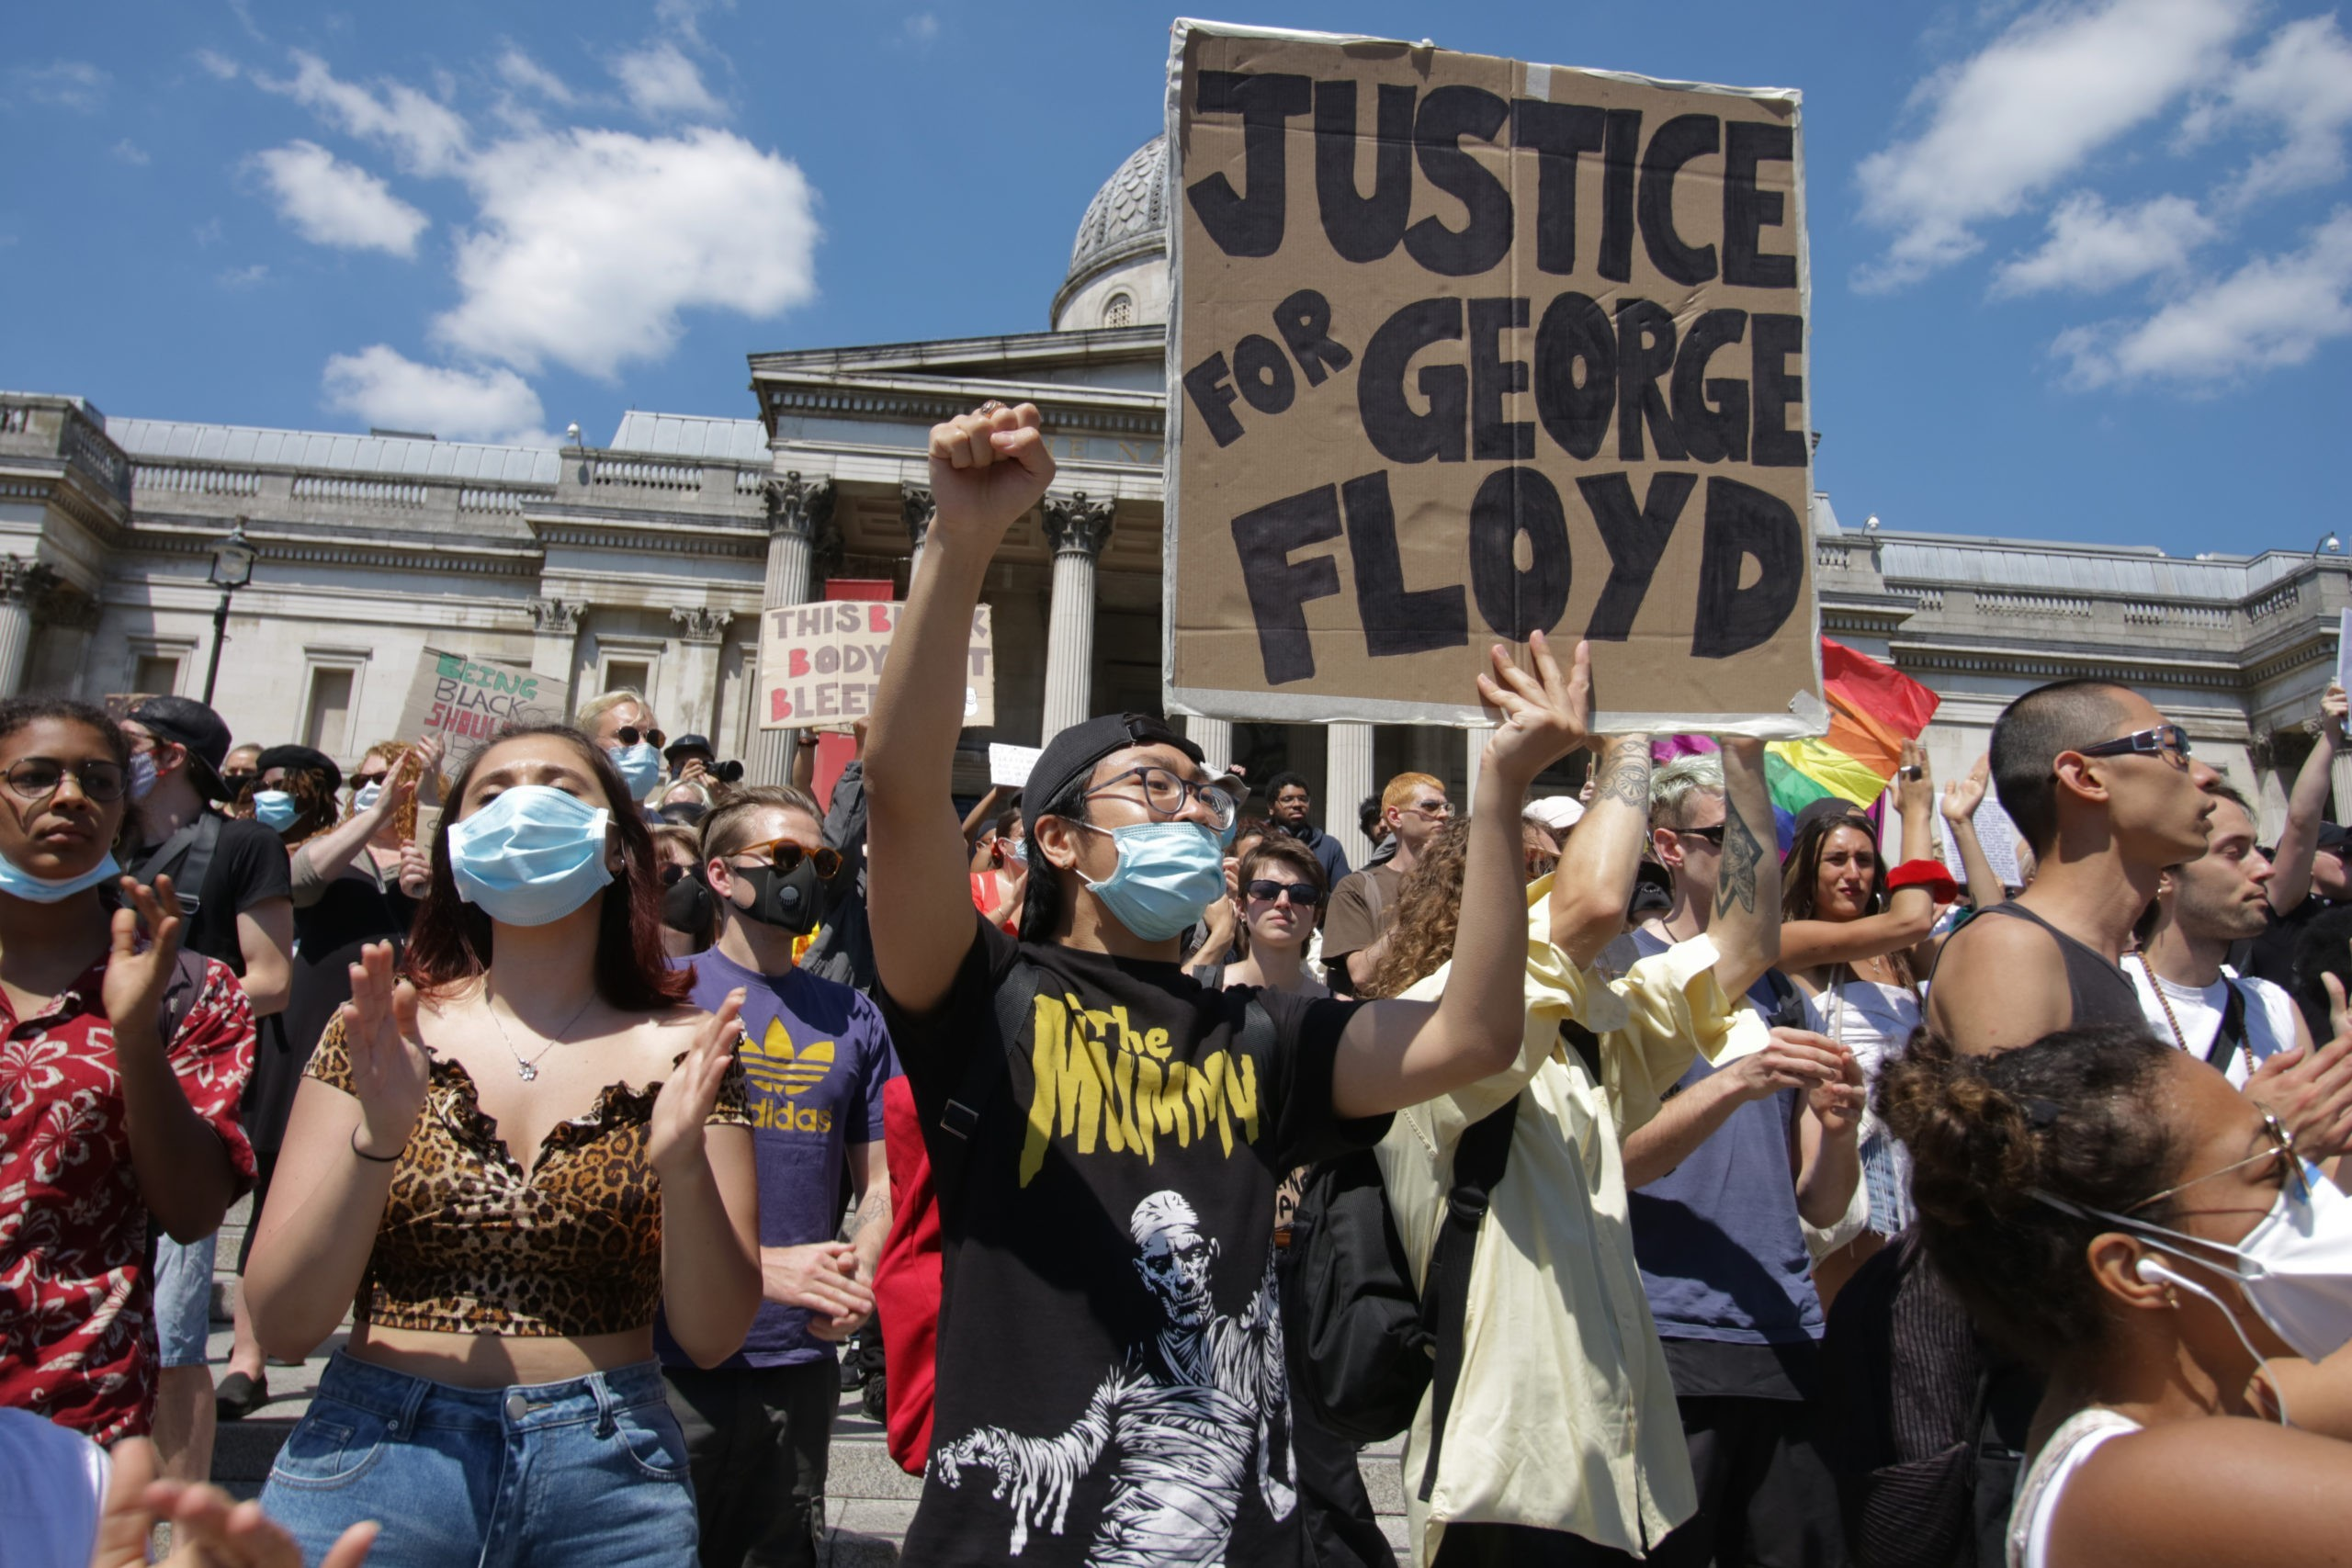 "Numerous of people taking part in last year's Black Lives Matter protest outside Trafalgar Square, London. A man is holding a sign that says ""Justice for George Floyd"""